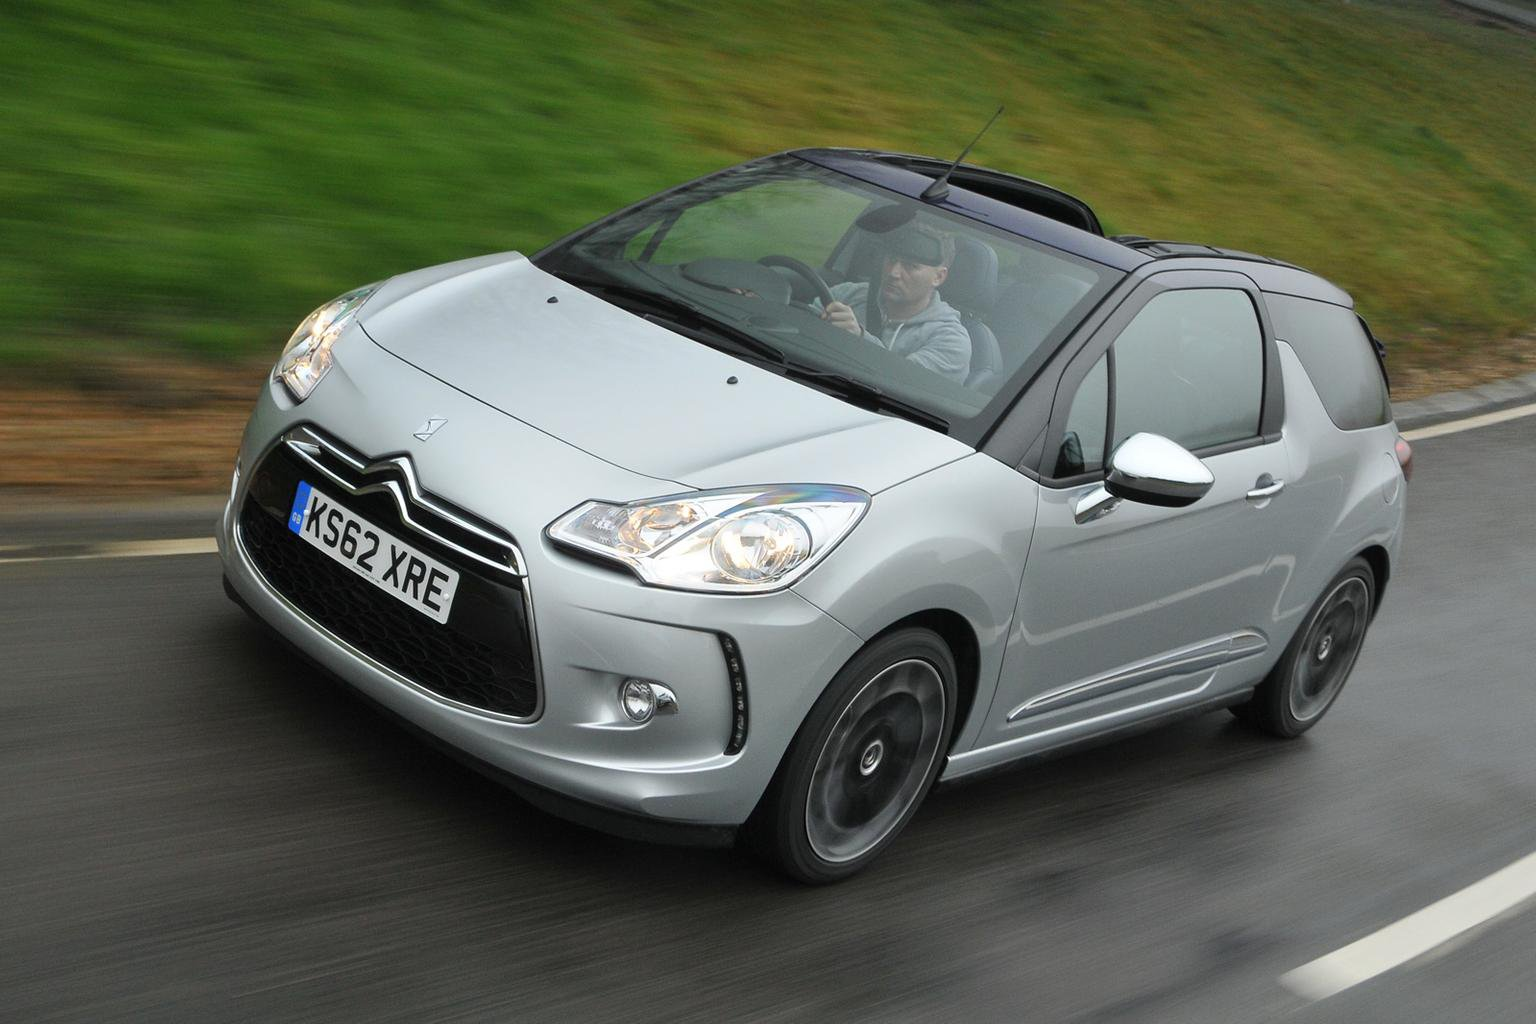 Deal of the day: Citroen DS3 Cabriolet